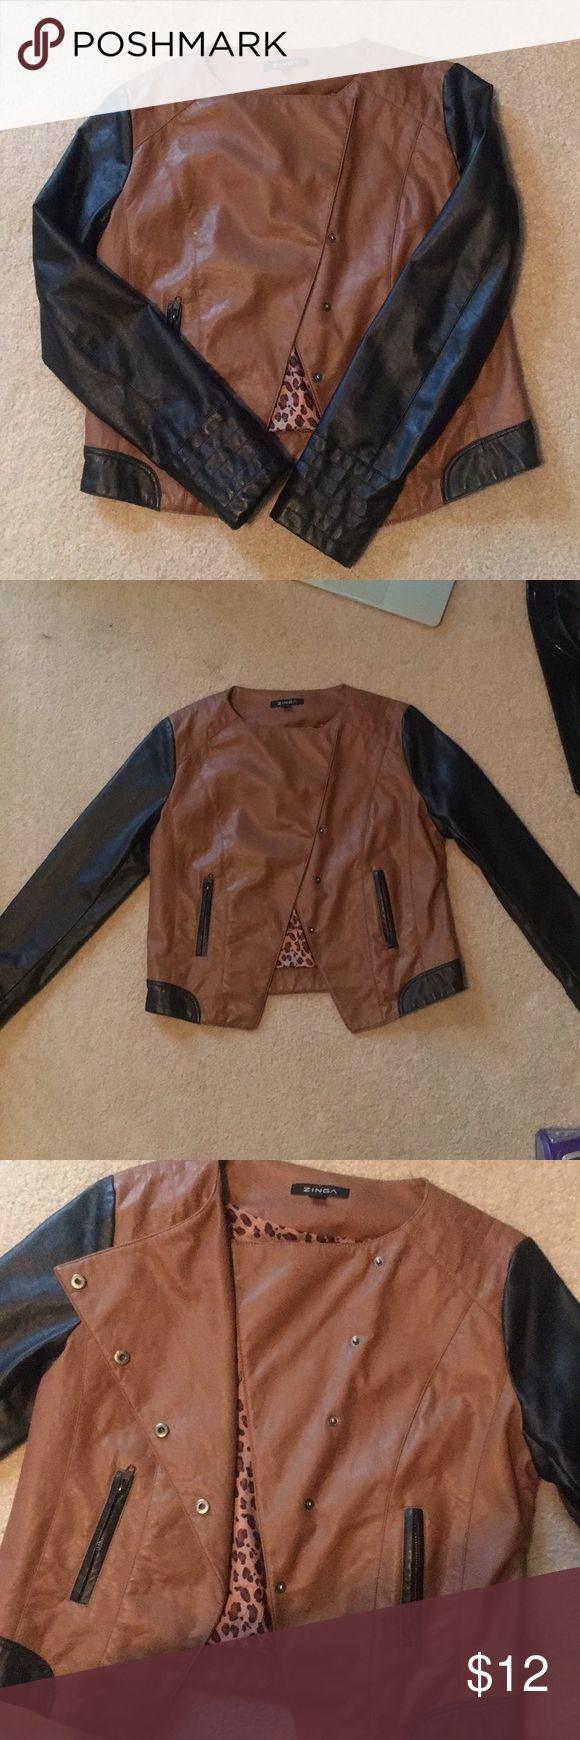 Brown & Black Faux Leather Jacket - Size L Faux Leather Jacket - Size L. Button closure in the middle, zipper pockets on both sides. Brown chest with black sleeves. Cheetah print fabric on the inside. zinga Jackets & Coats